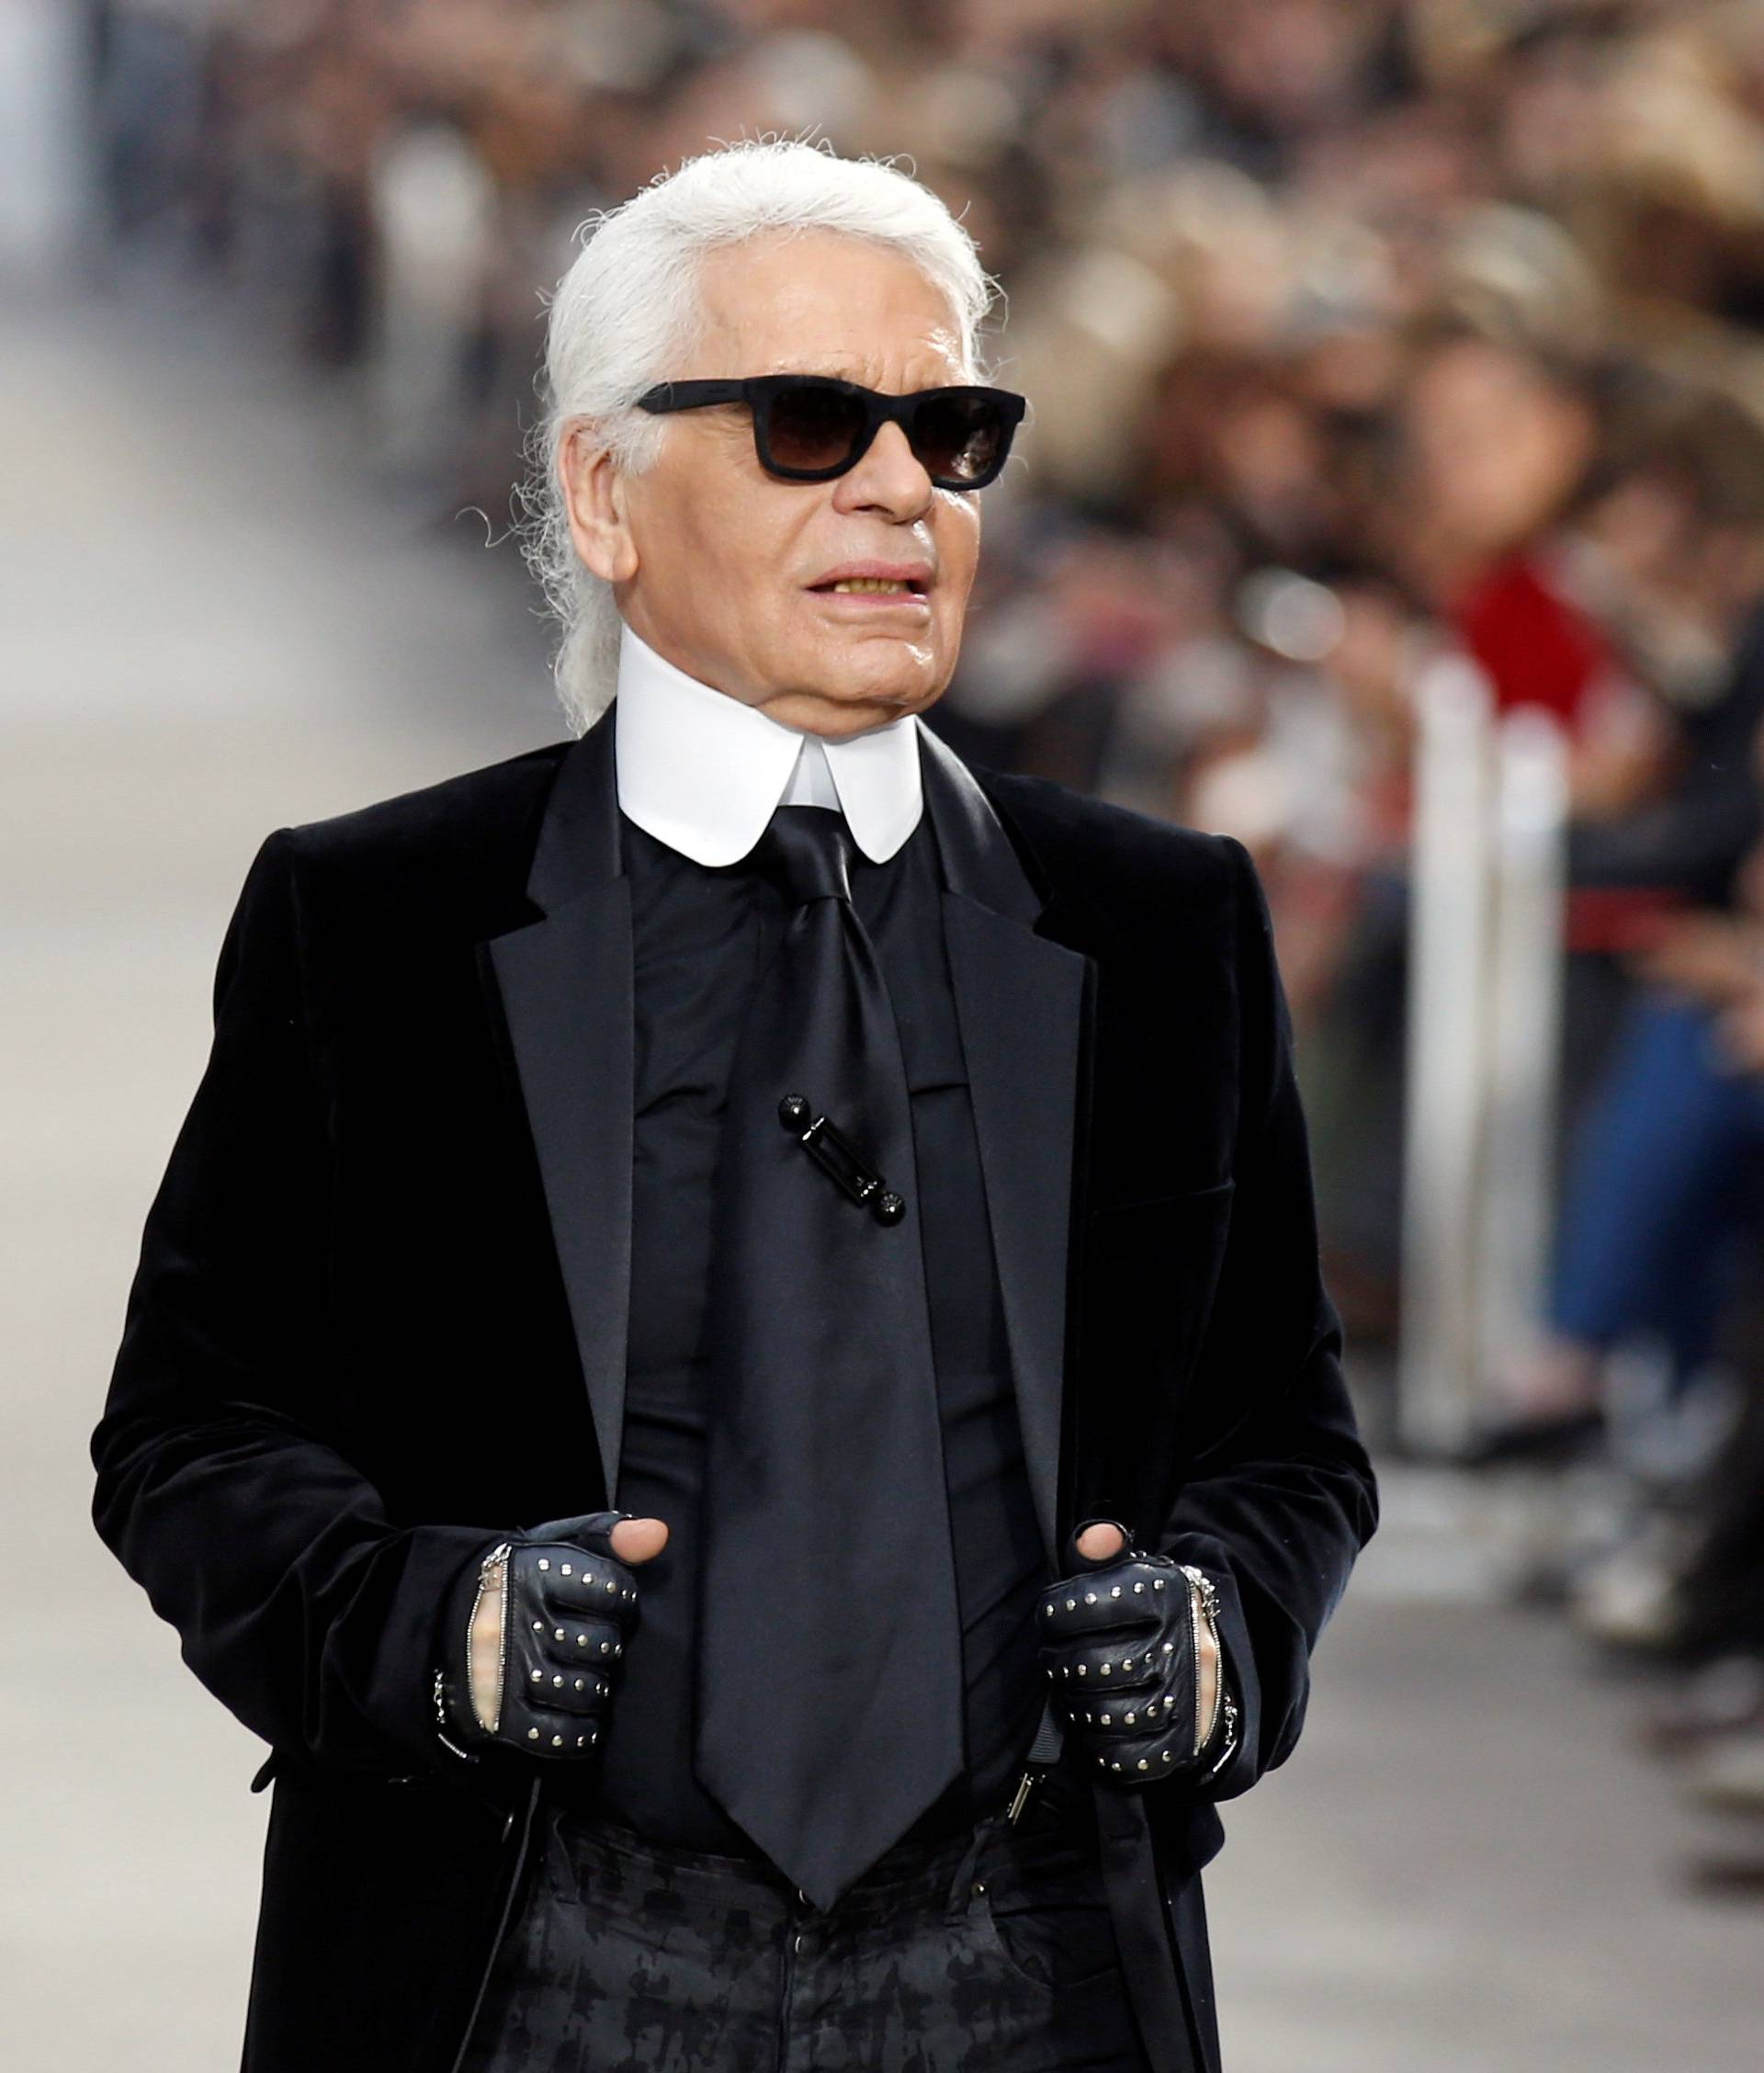 FILE PHOTO -  German designer Karl Lagerfeld appears at the end of his Spring/Summer 2014 women's ready-to-wear fashion show for French fashion house Chanel during Paris fashion week